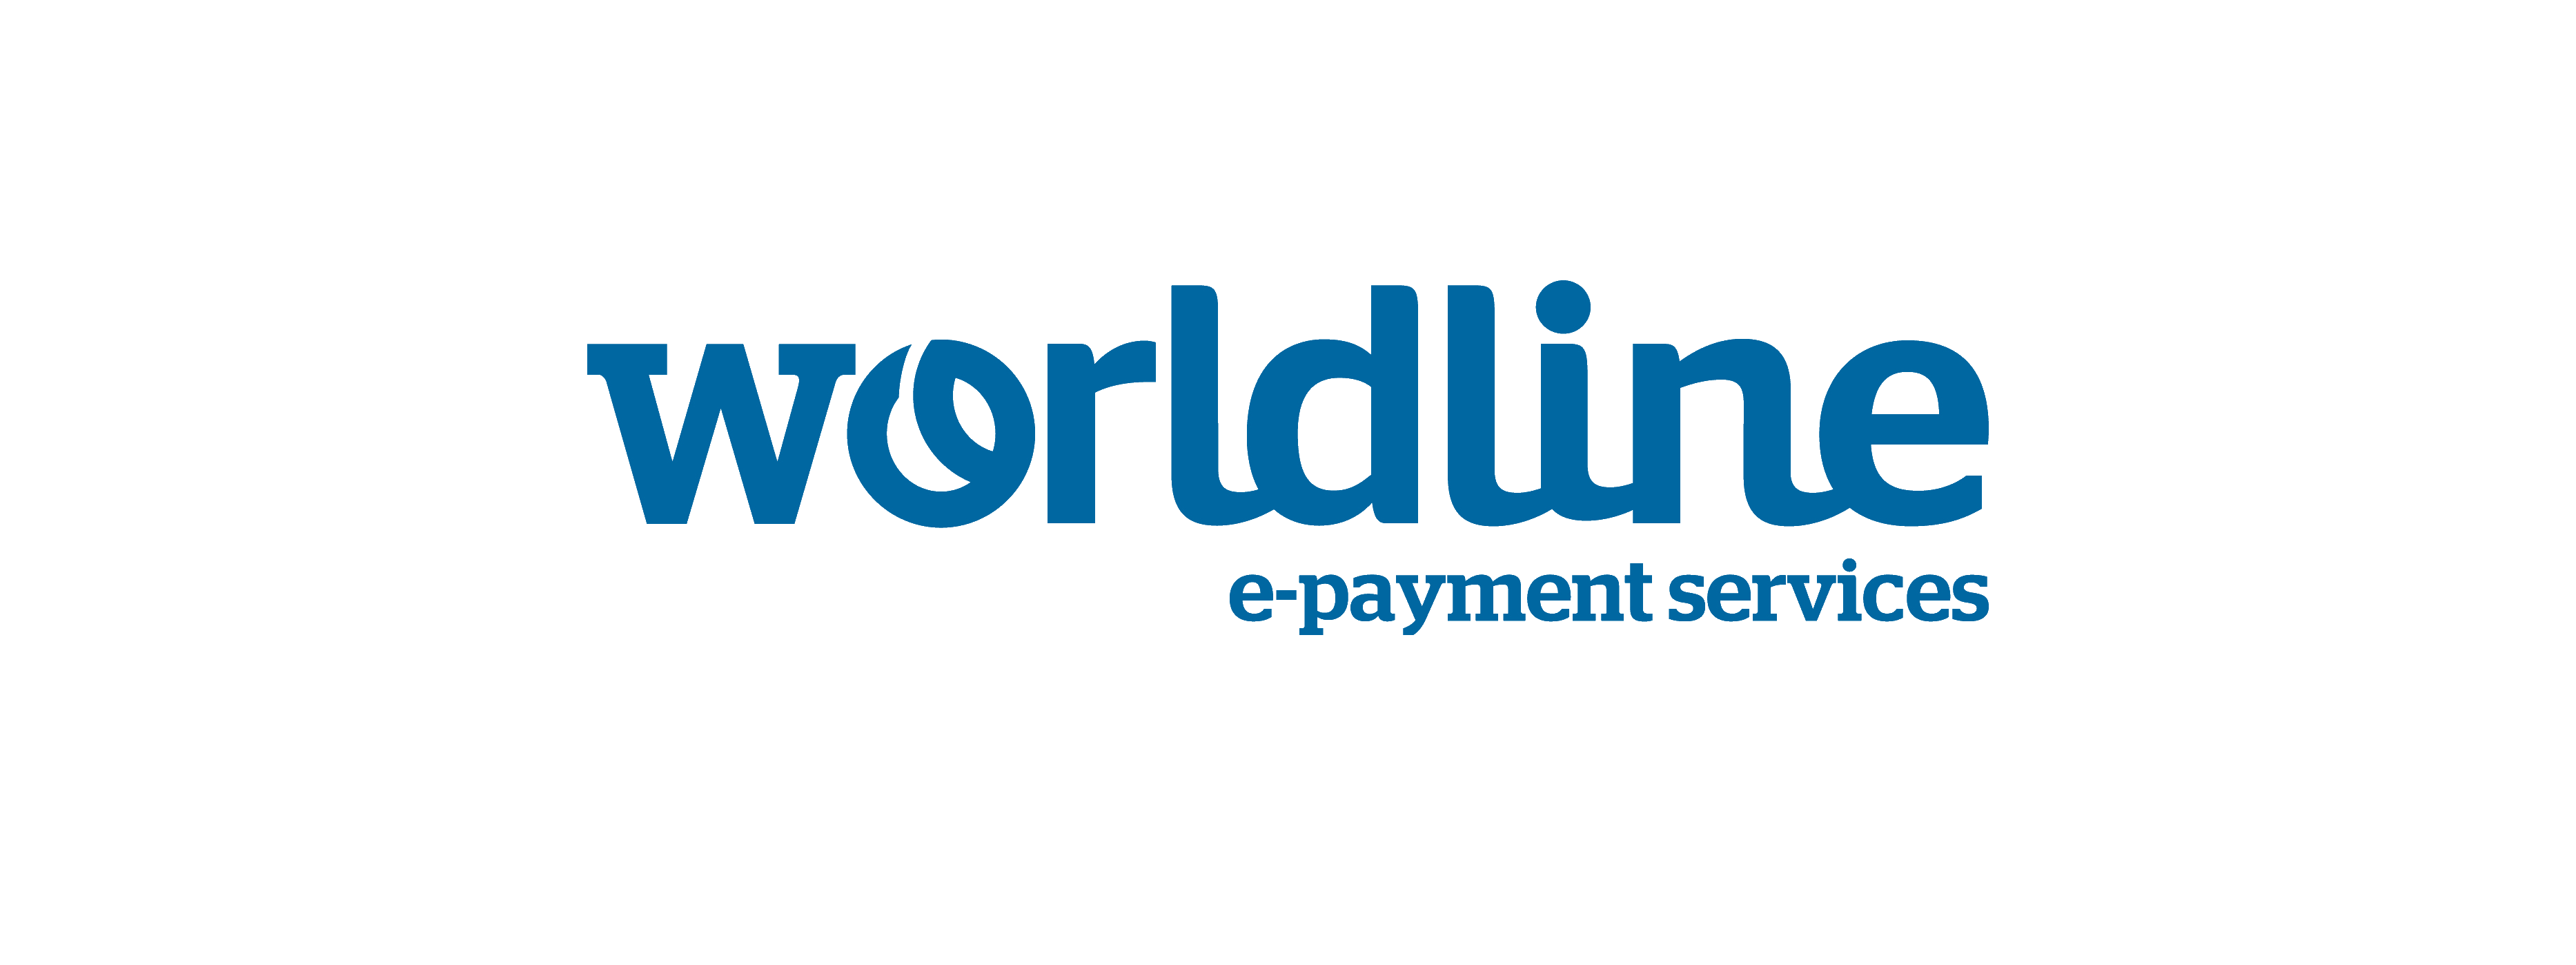 Worldline Announces a Major Strategic Commercial Acquiring Alliance with ANZ Bank in Australia